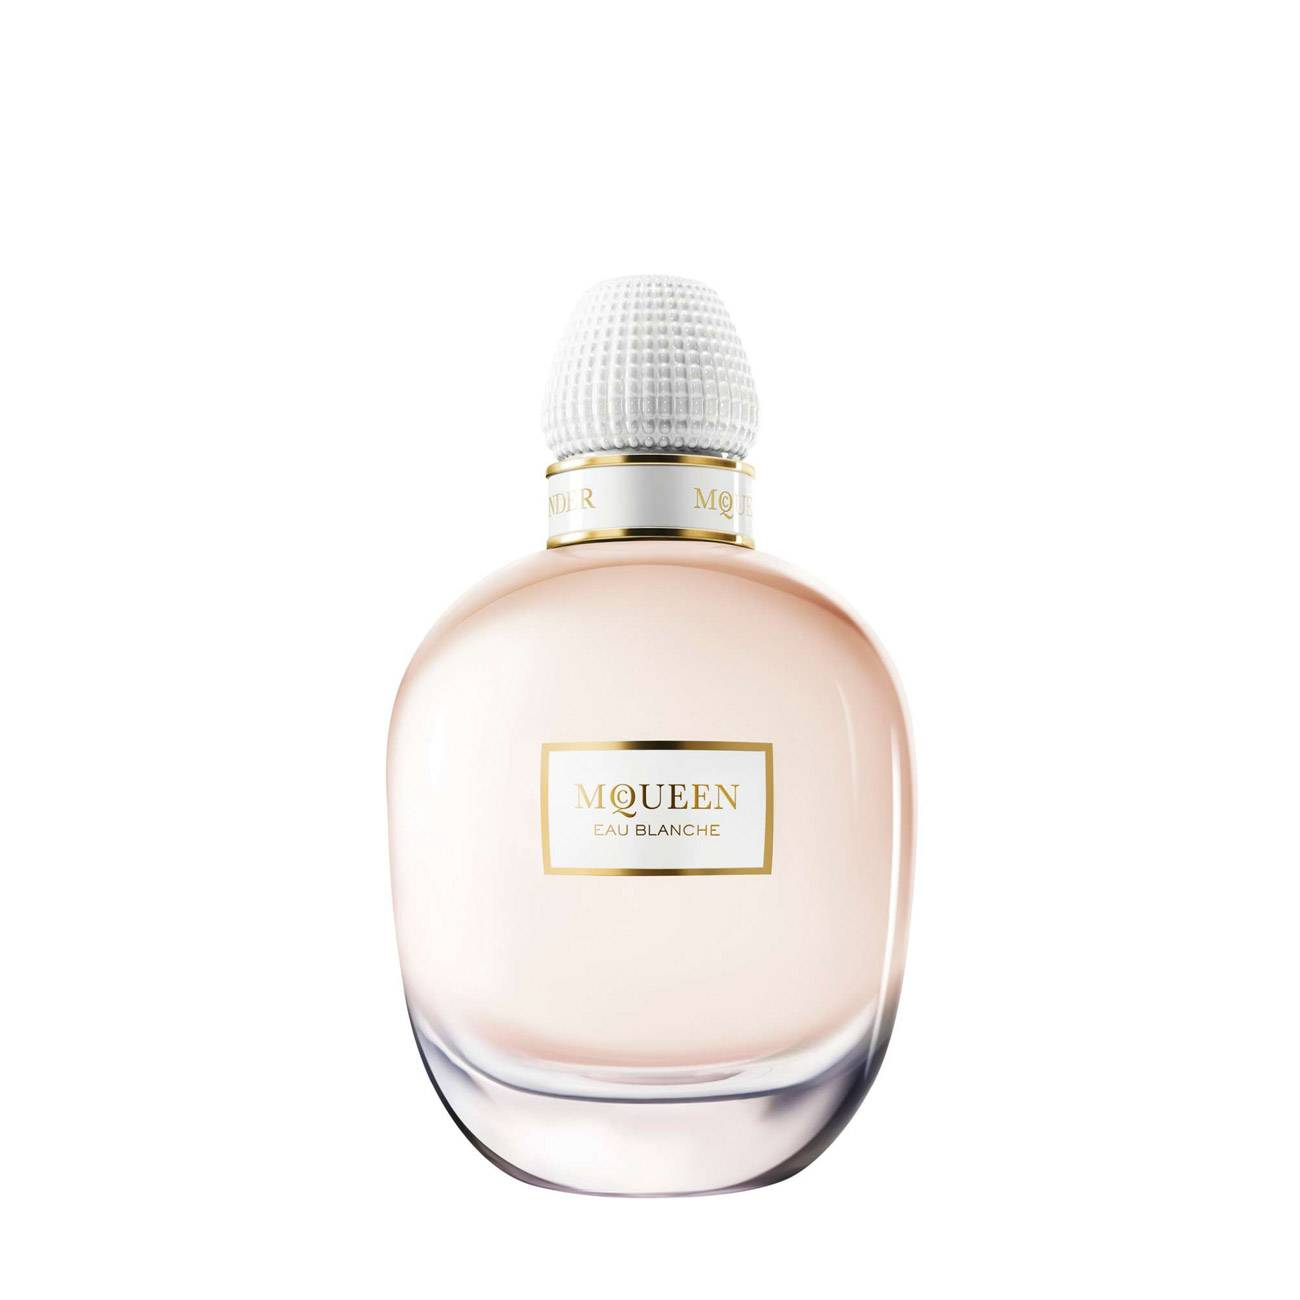 Mcqueen Eau Blanche 75ml imagine